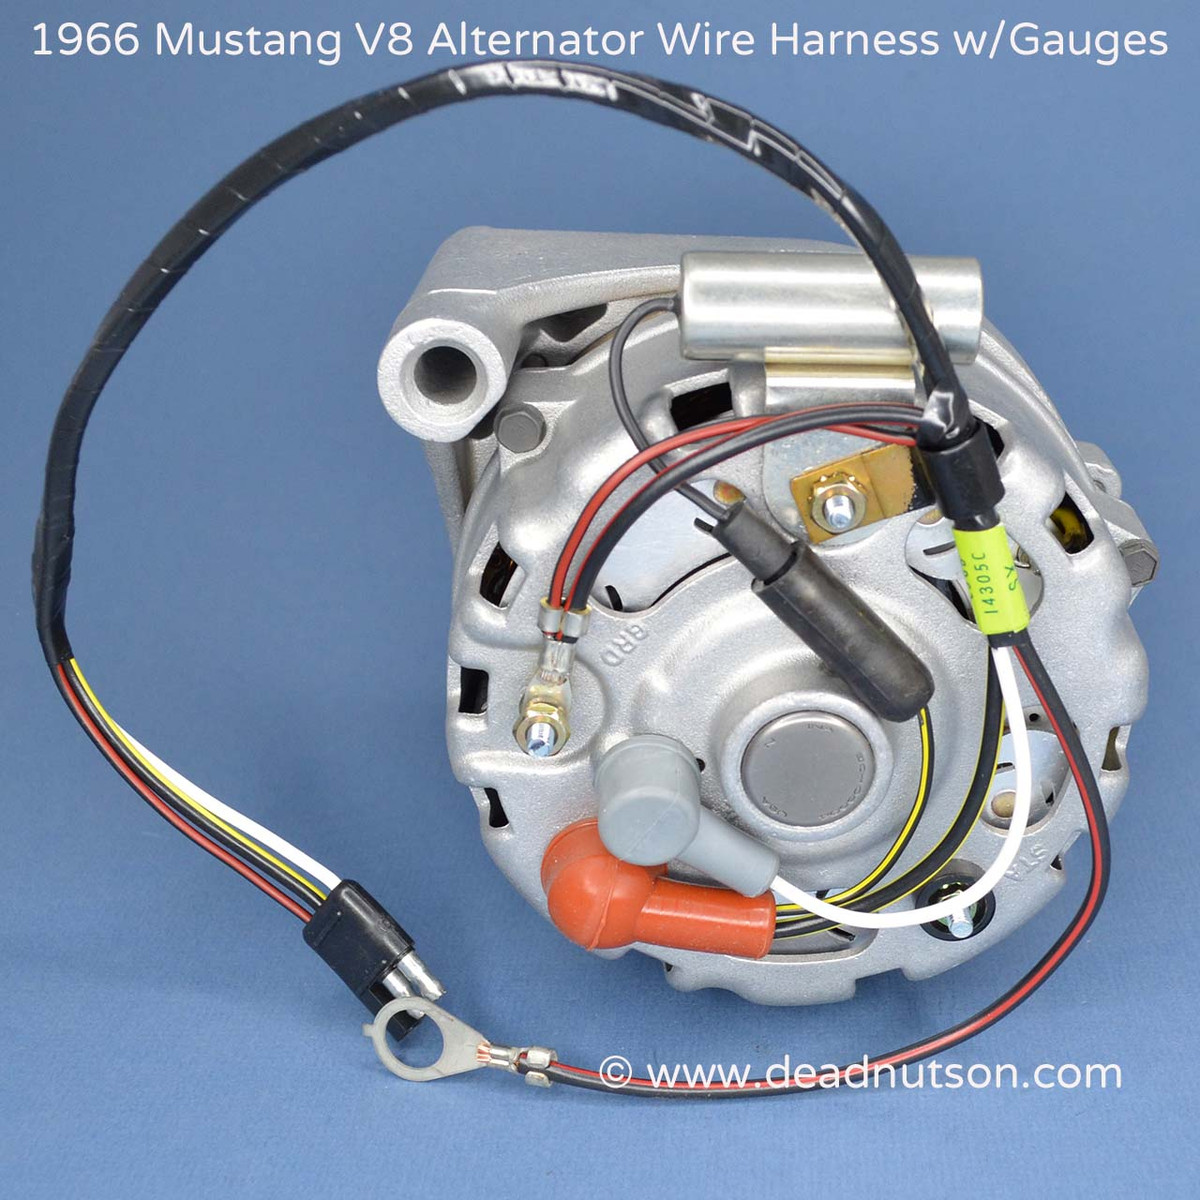 1964 1965 mustang alternator wire harness tag 289 w instrument gauges [ 1200 x 1200 Pixel ]